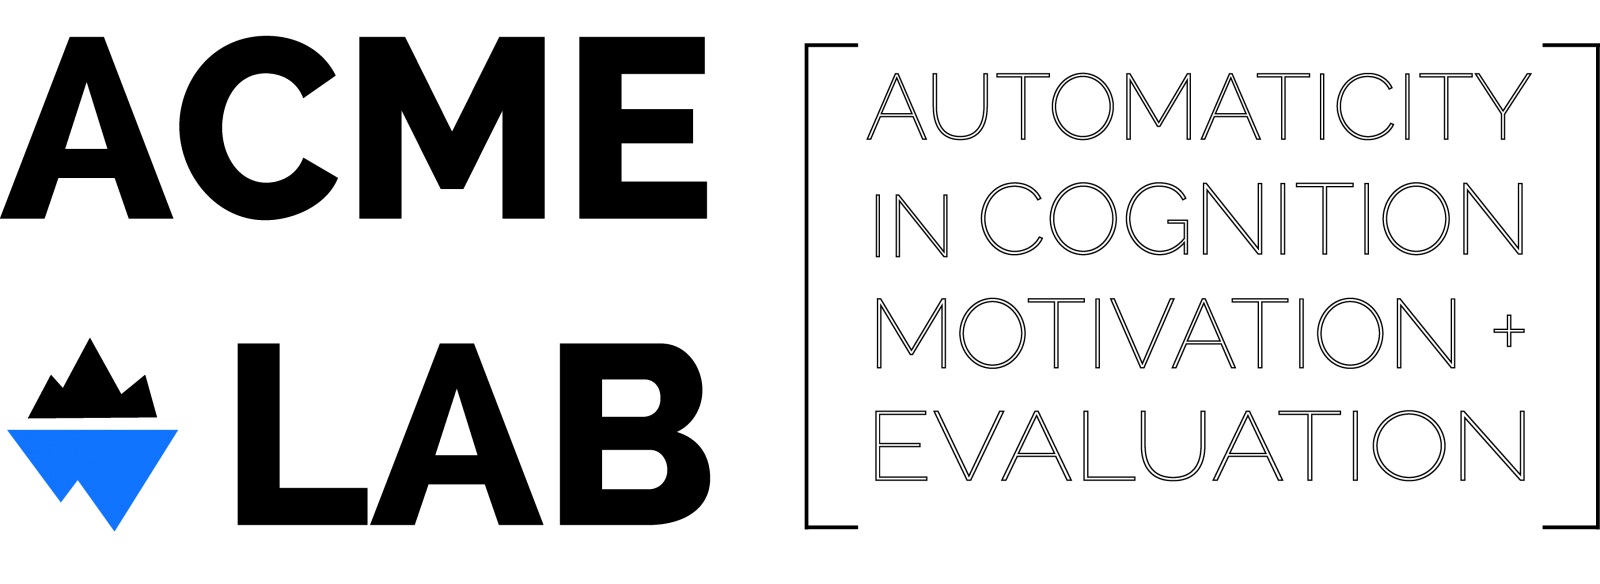 Automaticity in Cognition, Motivation, and Evaluation